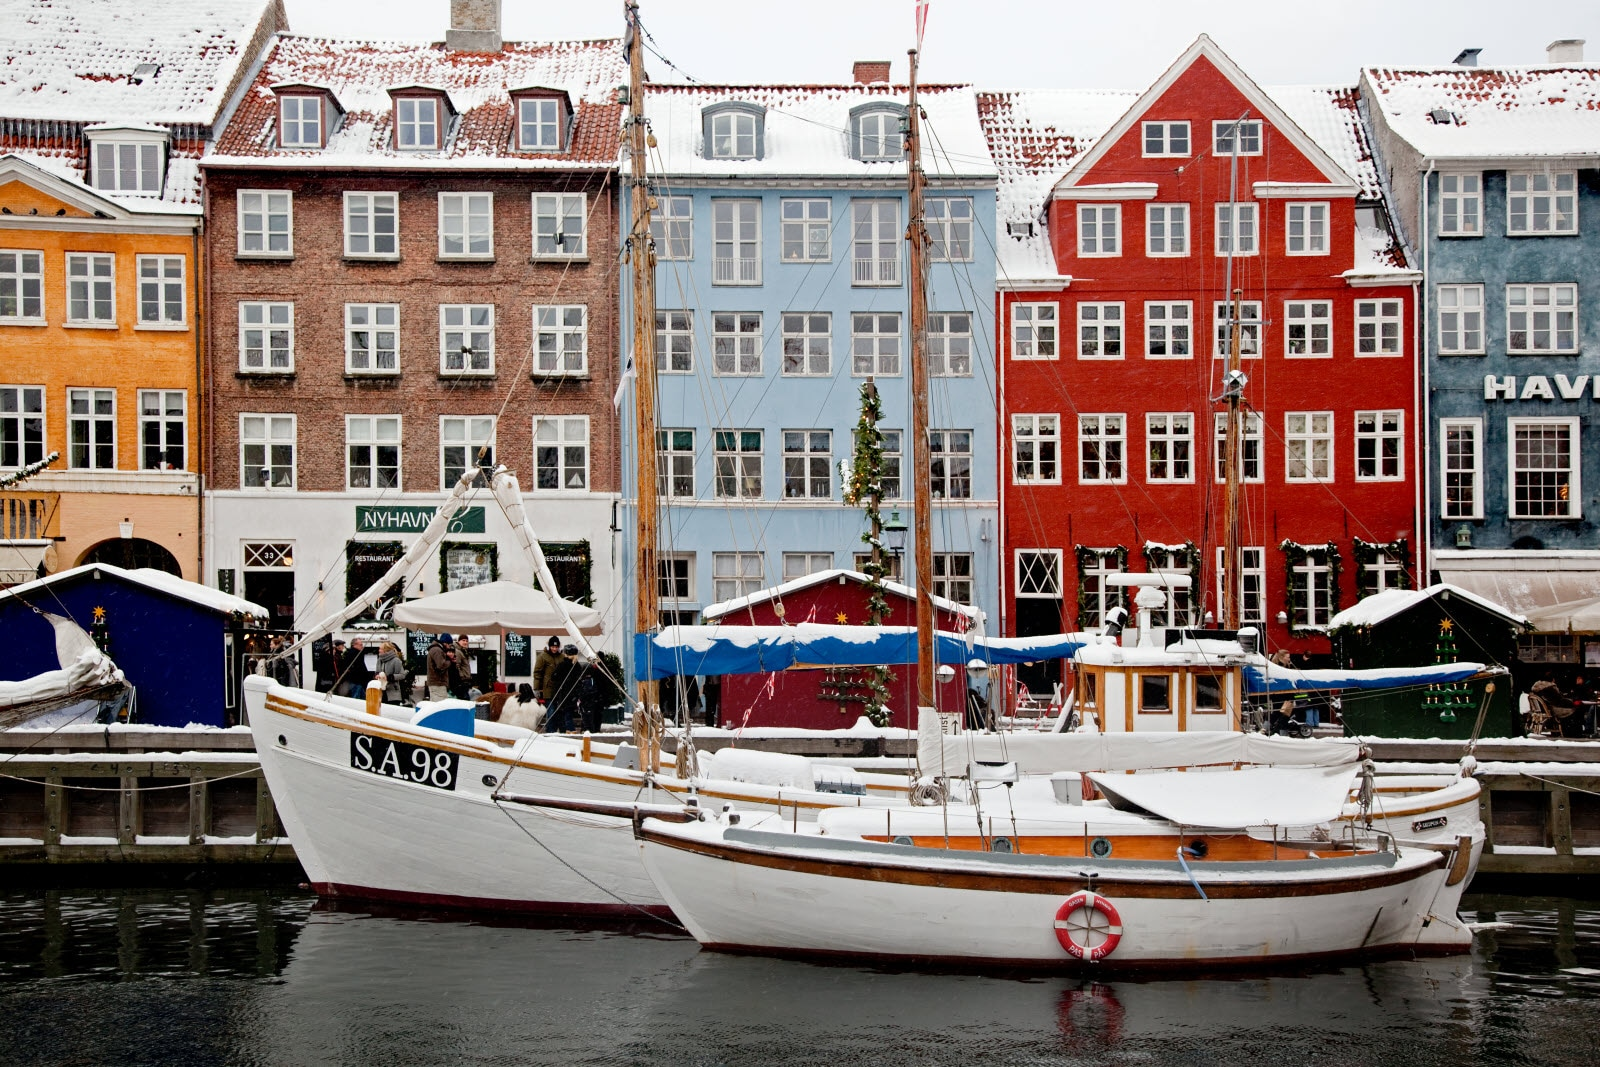 Winter in Nyhavn, Copenhagen